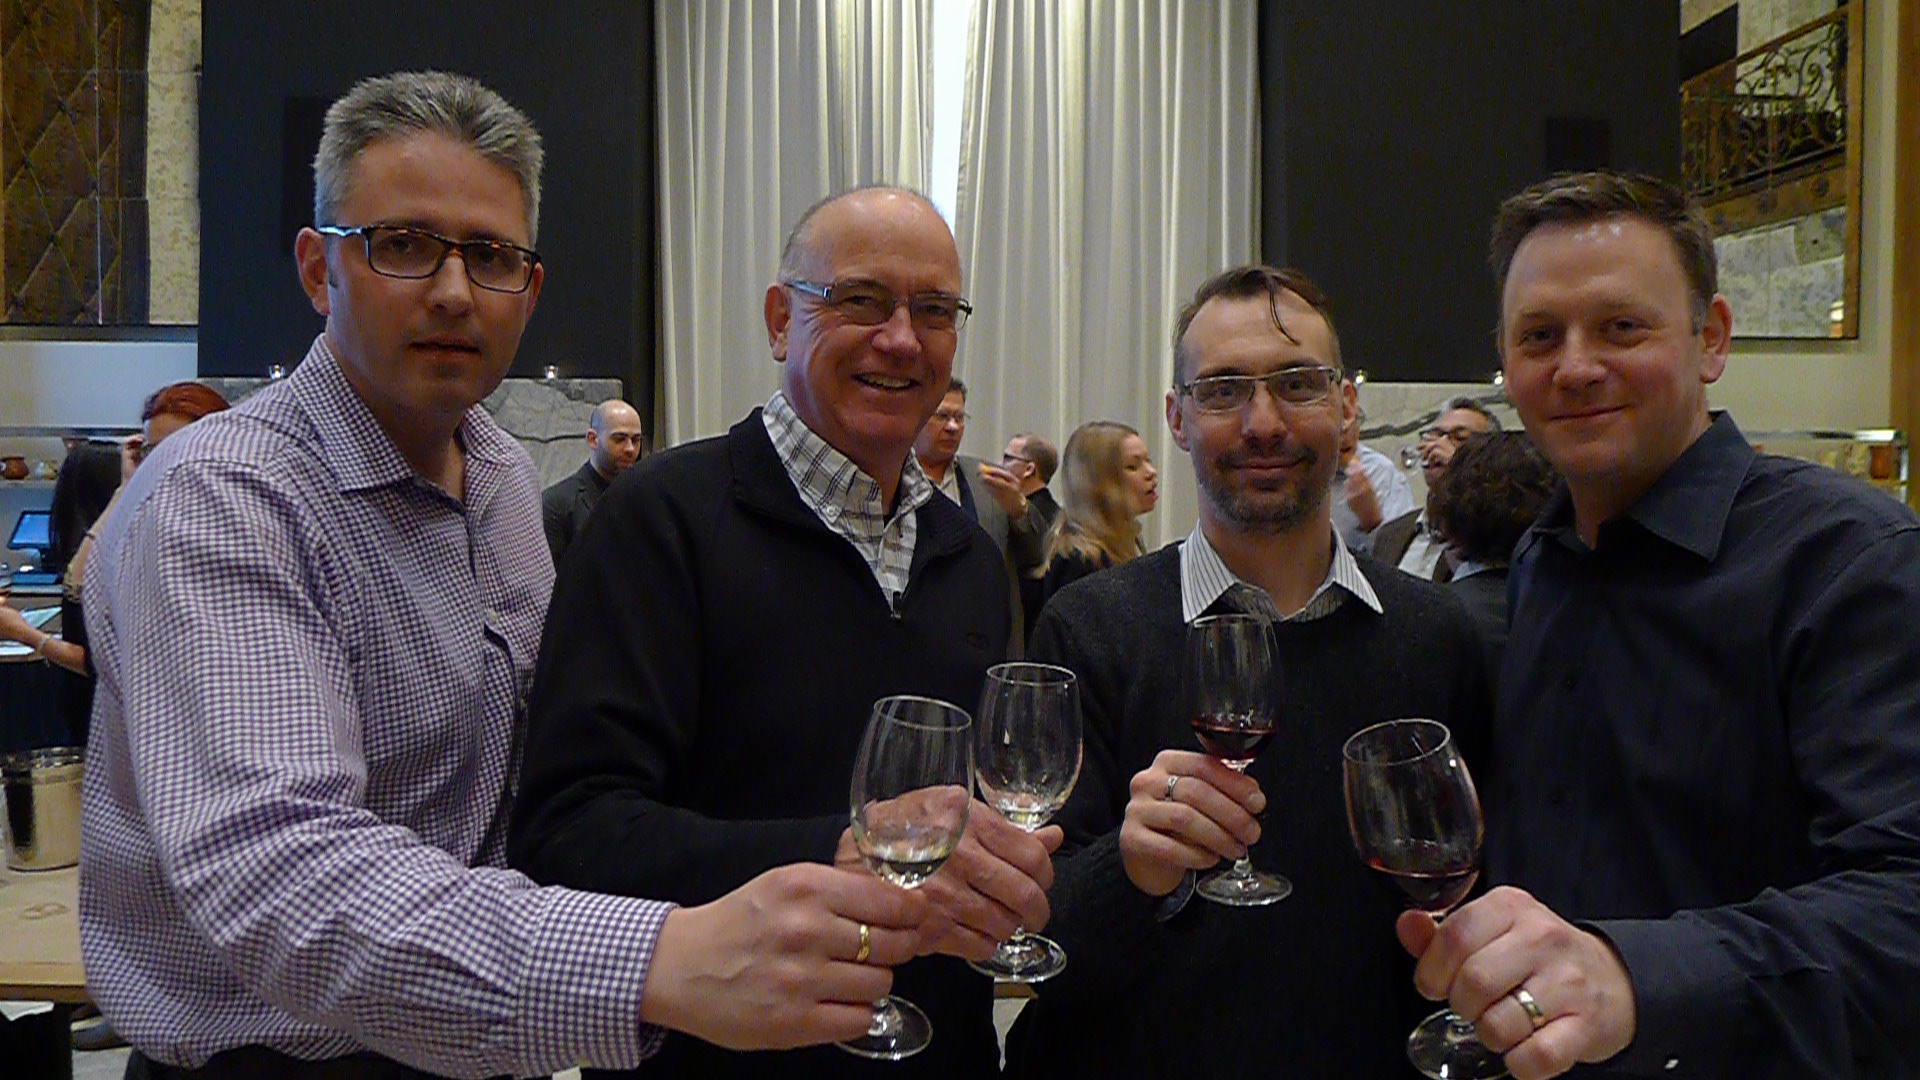 Steve Stoddart (Rogers and Co.), Steven Campbell (Lifford Agencies), and Joshua Corea (Archive Wine Bar).